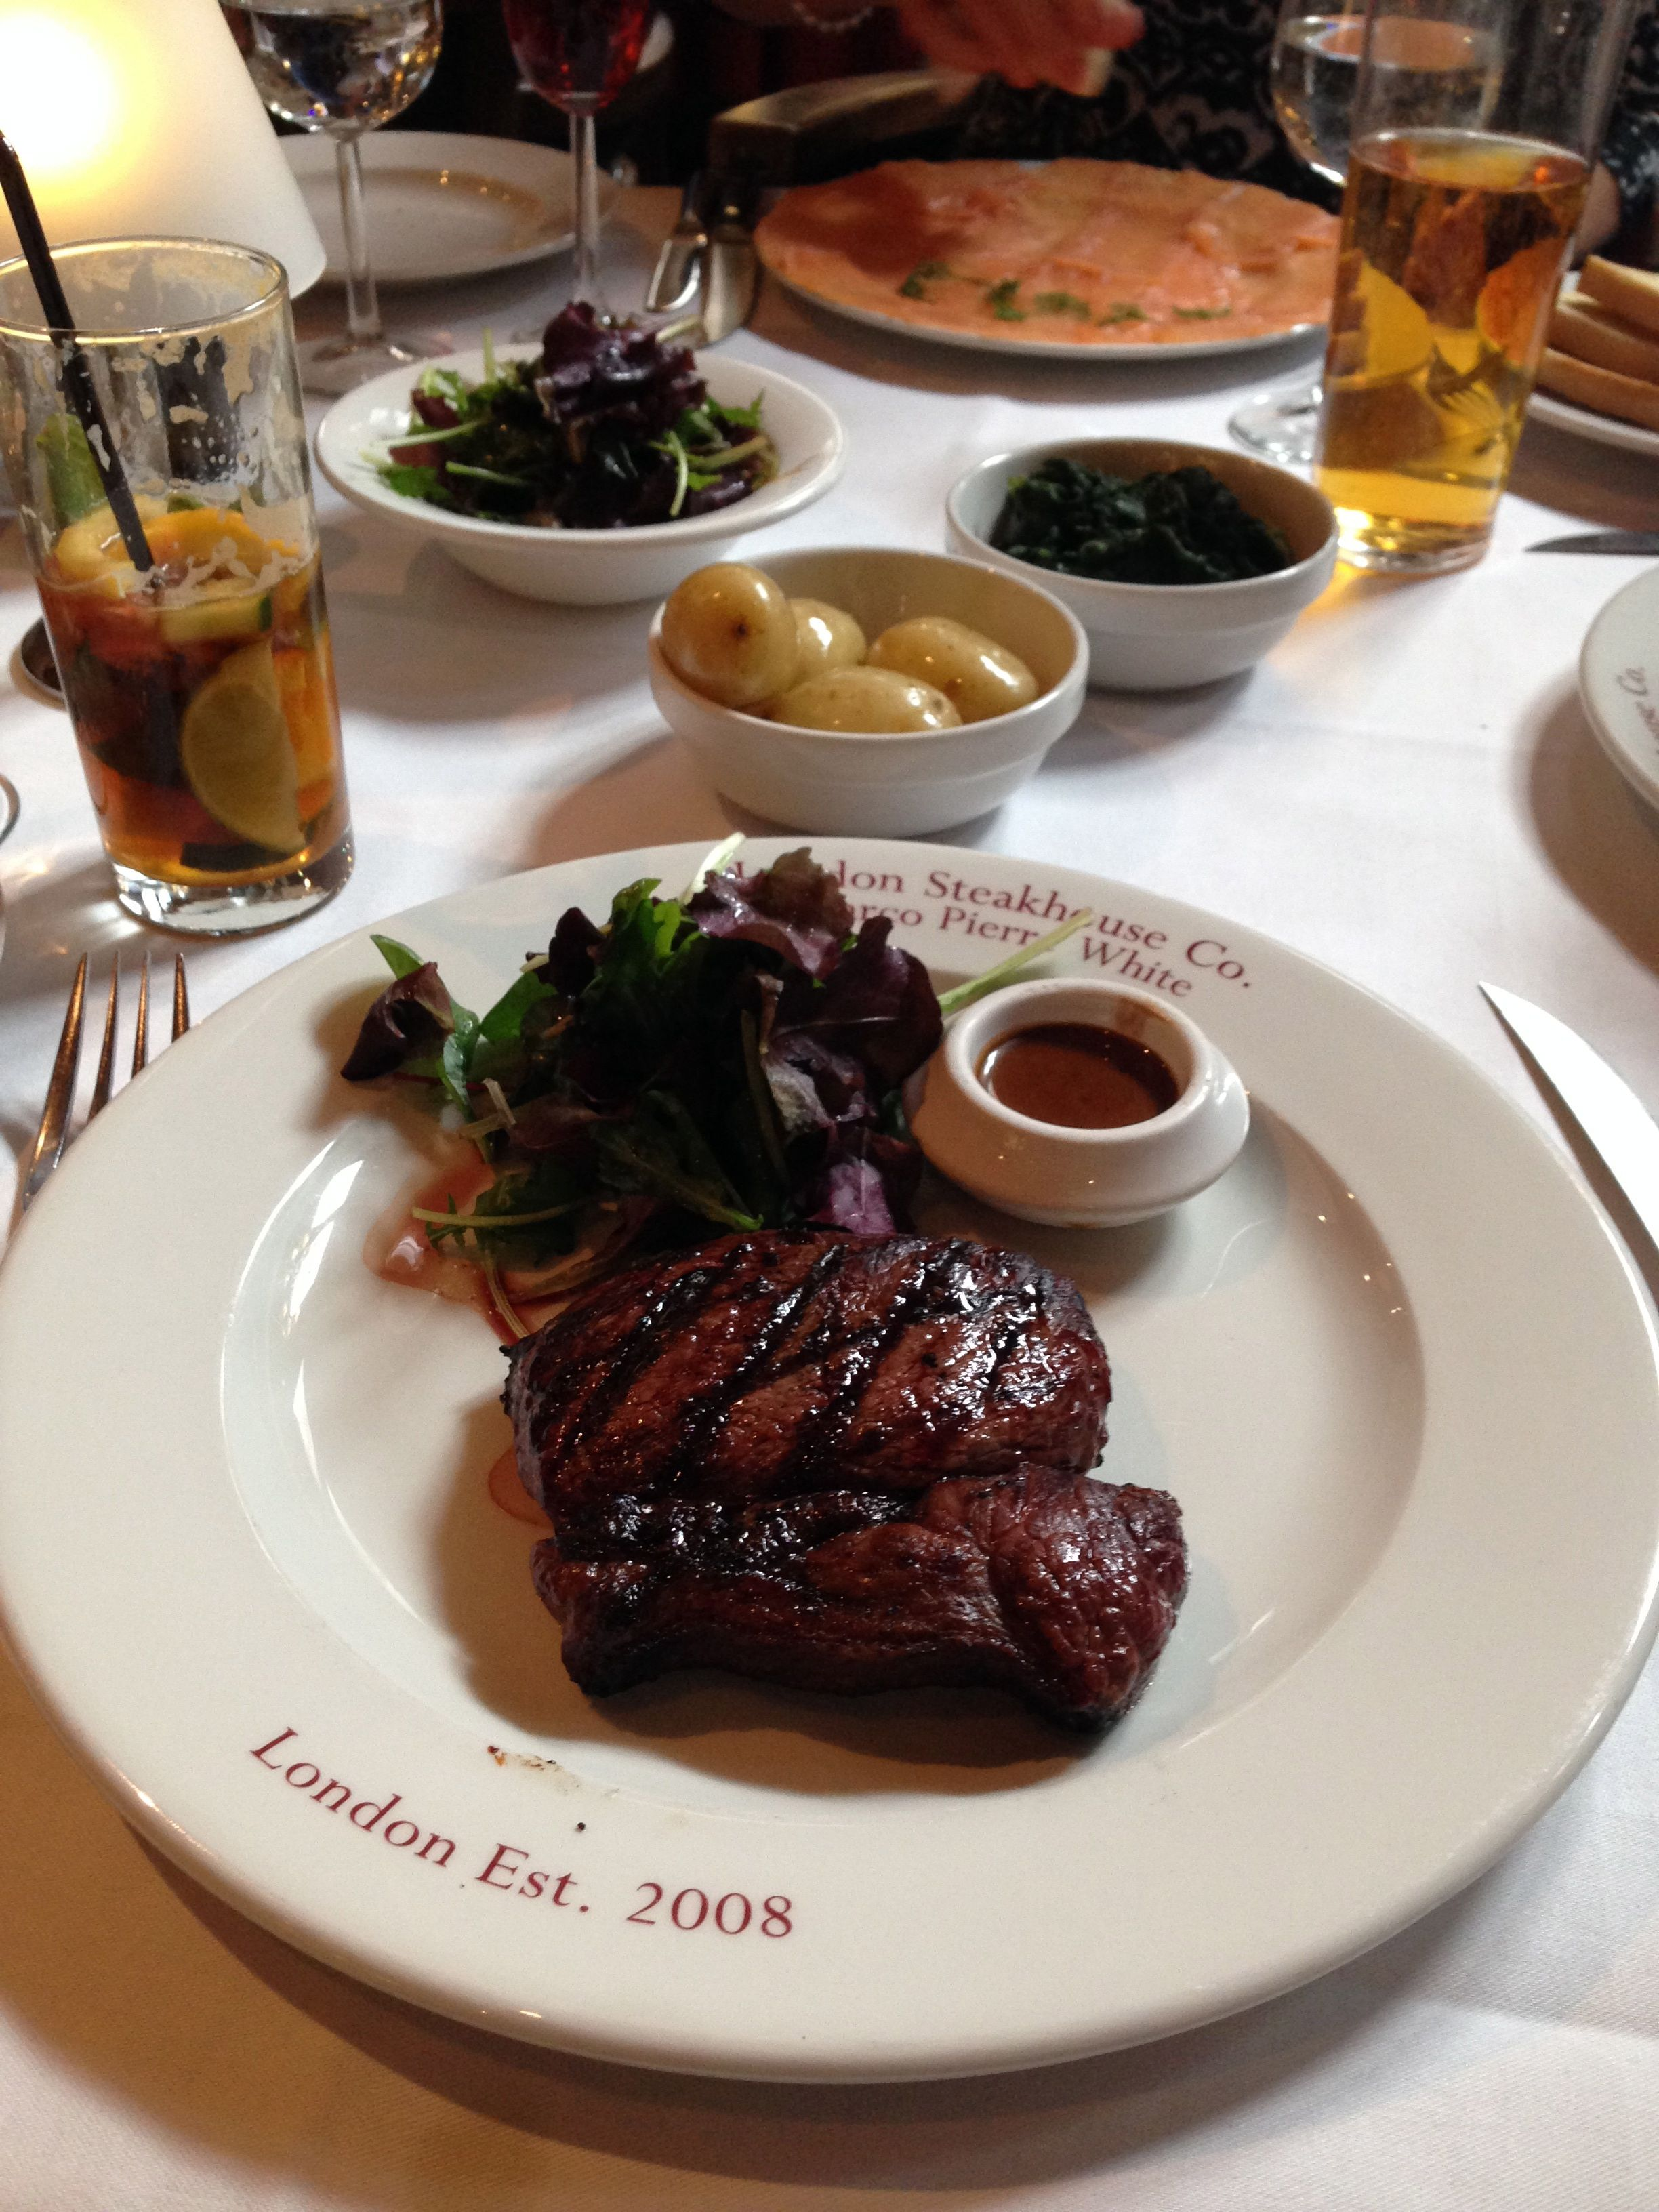 Marco Pierre White's Steakhouse - Petticoat Lane. Ate here today, beautiful food.